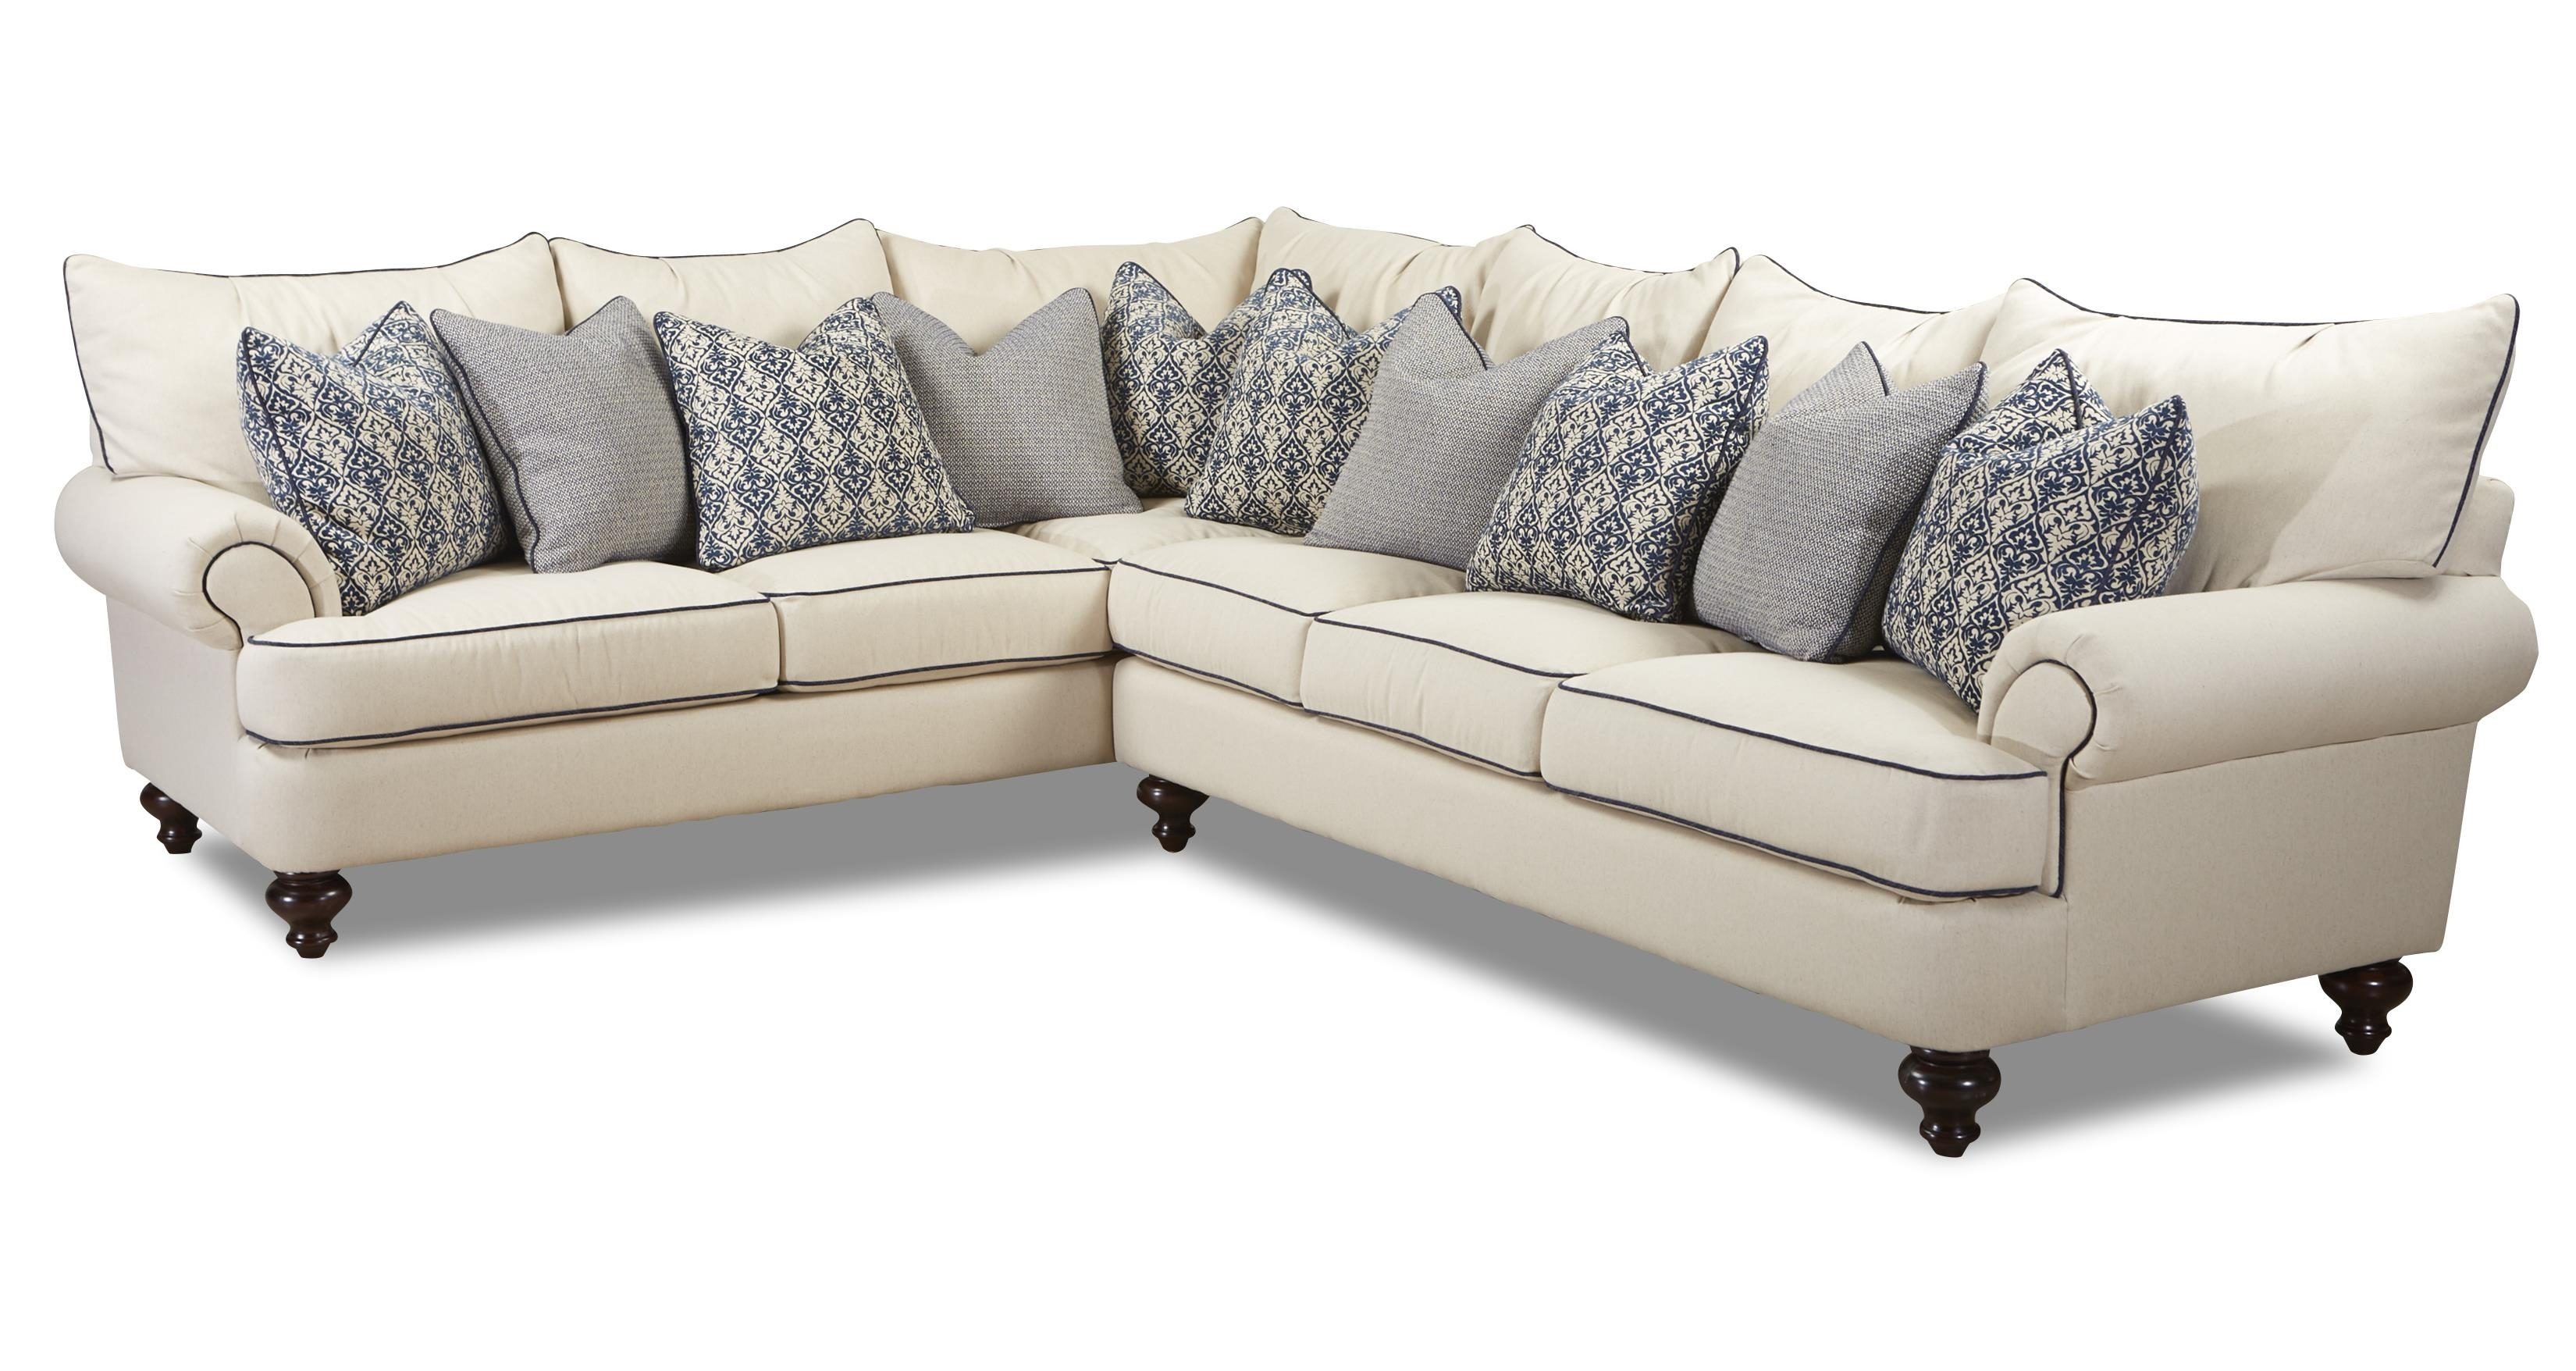 Shabby Chic Sectional Sofaklaussner | Wolf And Gardiner Wolf Pertaining To Shabby Chic Sofas (Image 8 of 10)